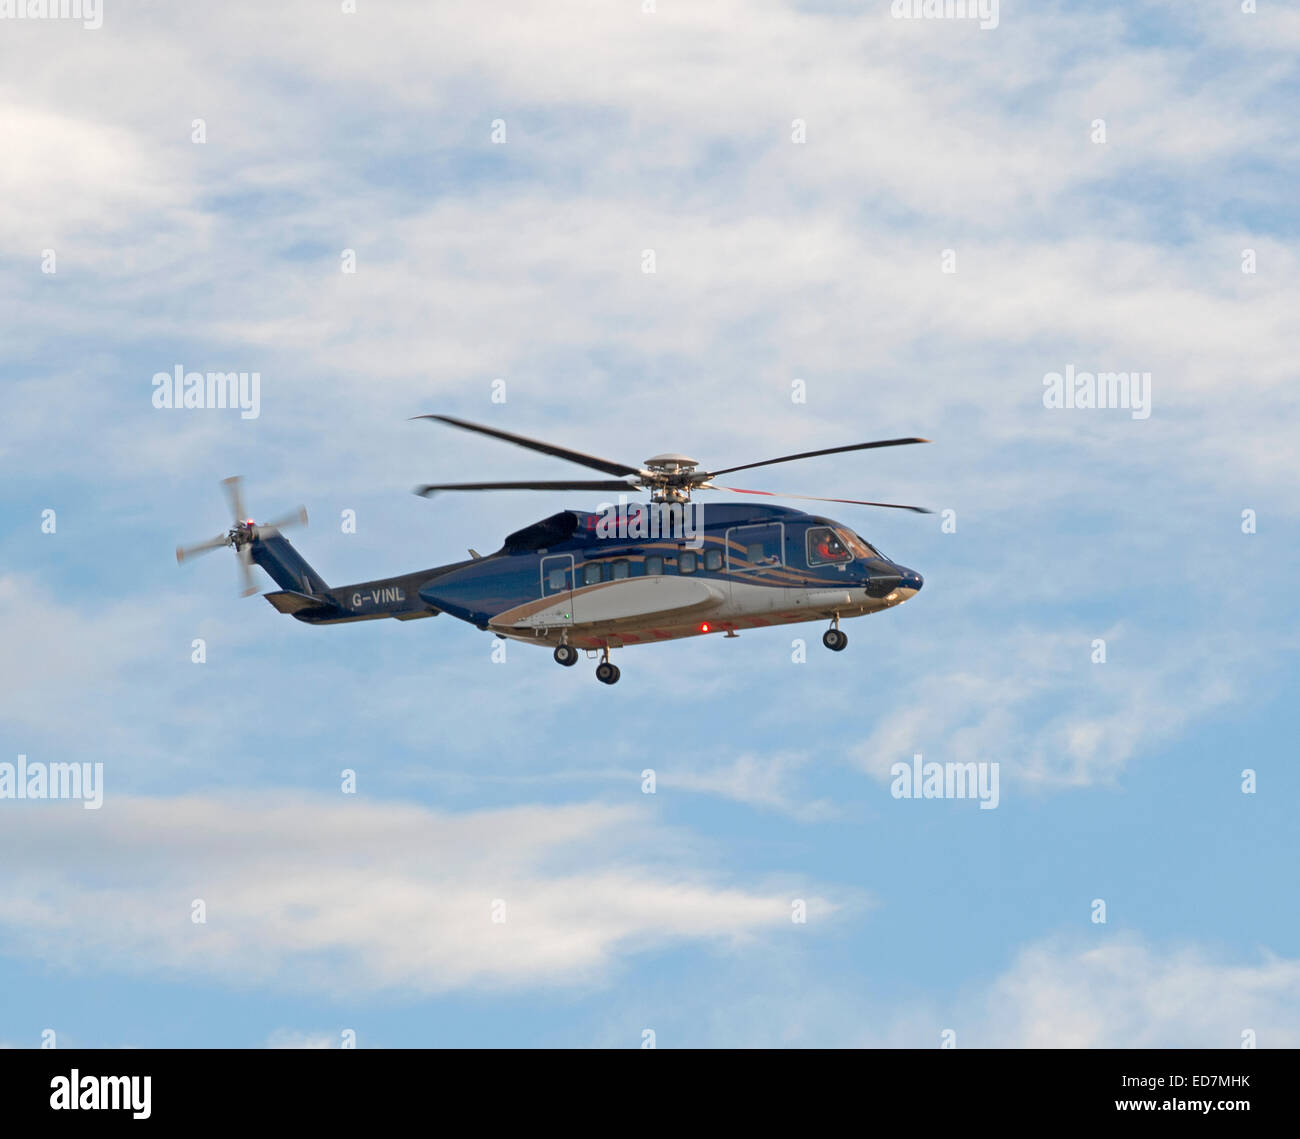 Bond Helibus North Sea Oil Offshore helicopter G-VINL returning to Aberdeen Dyce Airport, Scotland.  SCO 9386. - Stock Image